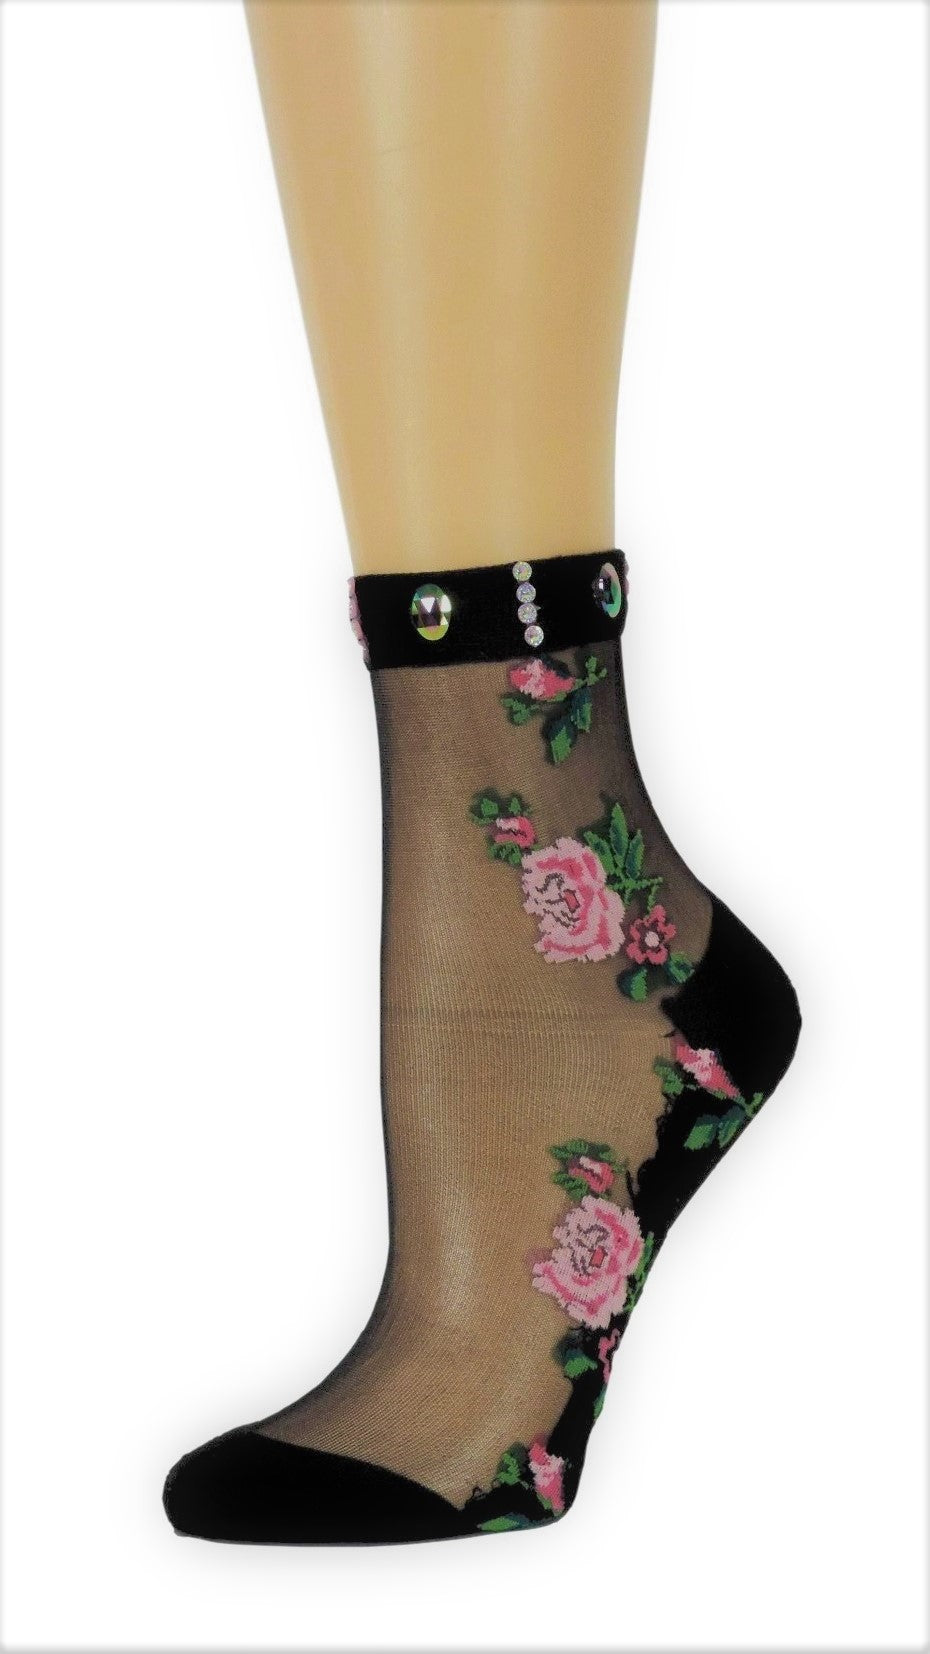 Two Peach Roses Custom Sheer Socks with beads